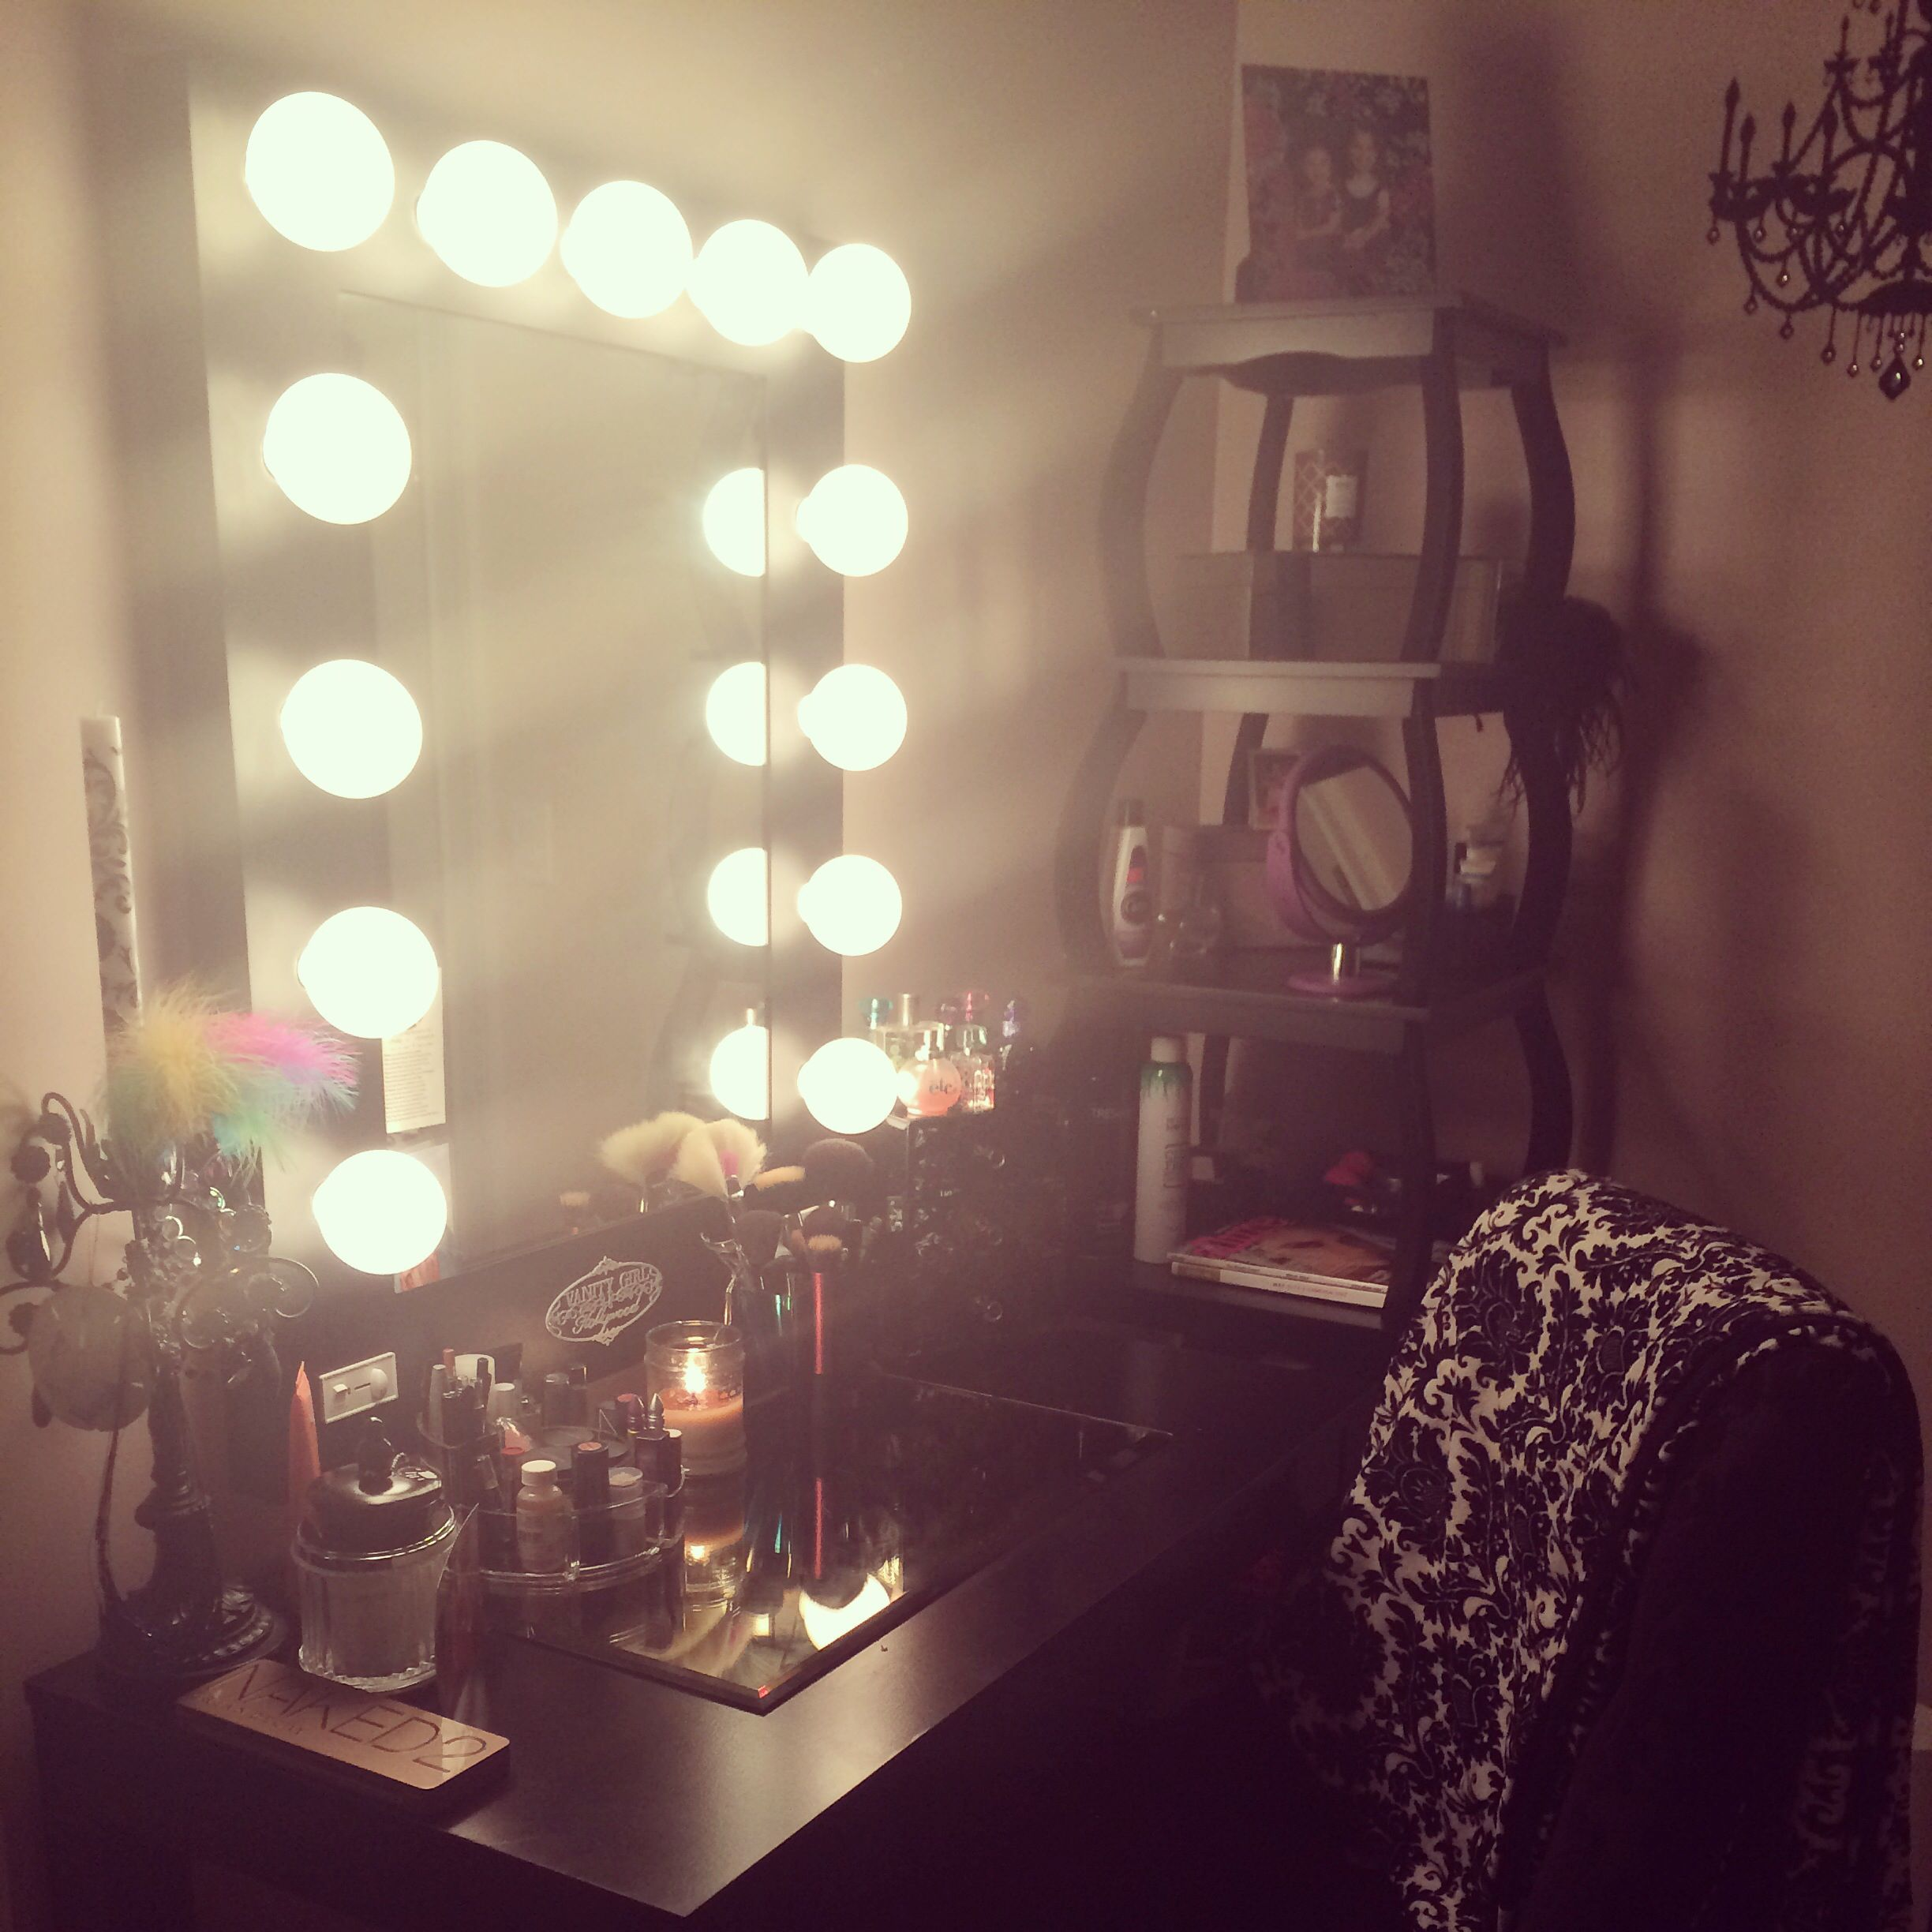 All black everything 💁 Seriously amazing vanity space from